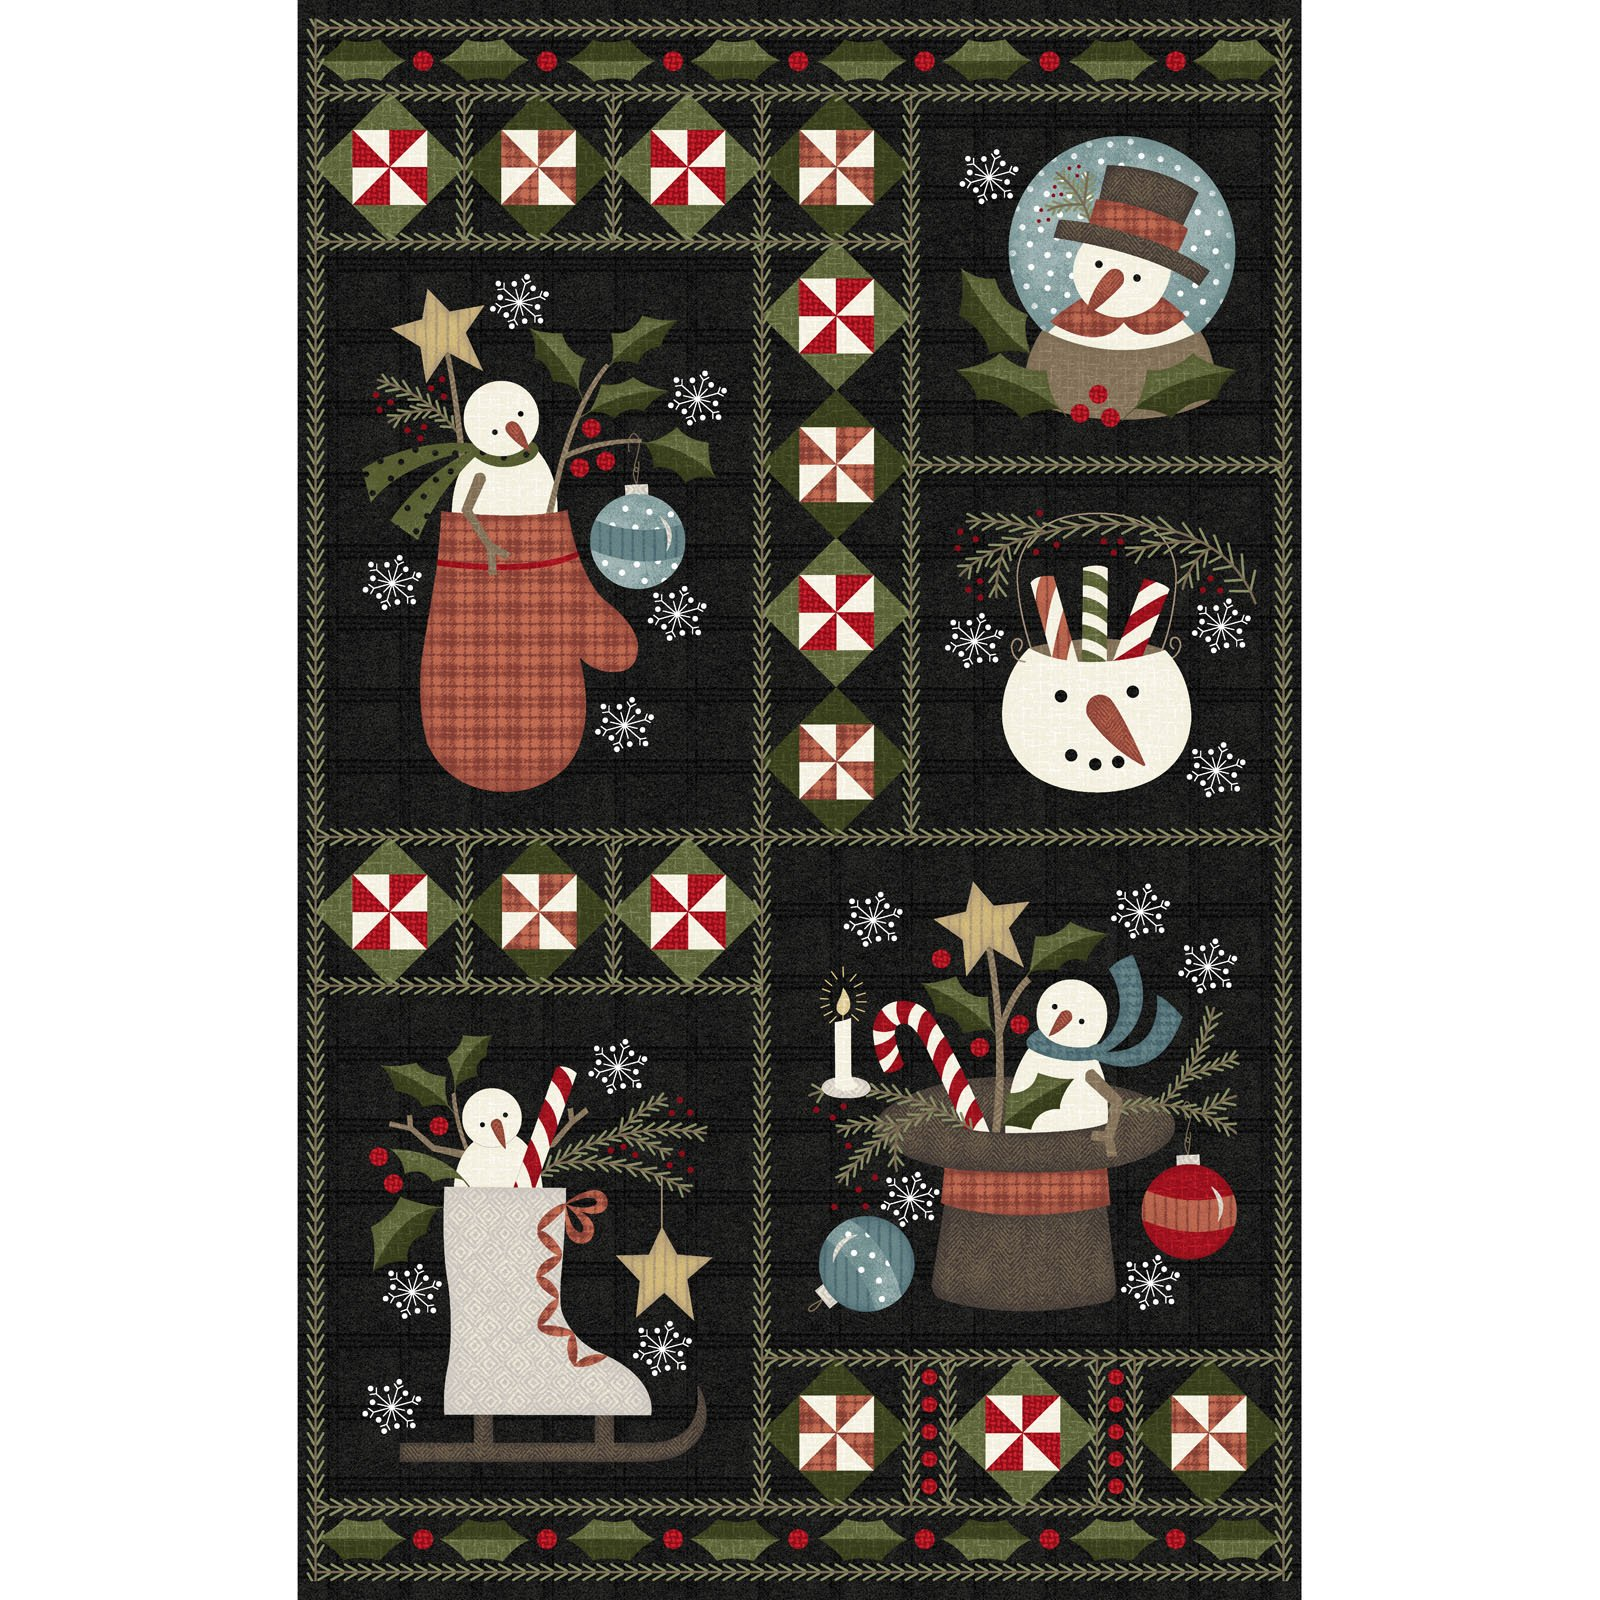 EESC-F9931 JK - SNOWDAYS FLANNEL BY BONNIE SULLIVAN PANEL 27 CHARCOAL - ARRIVING IN JULY 2021